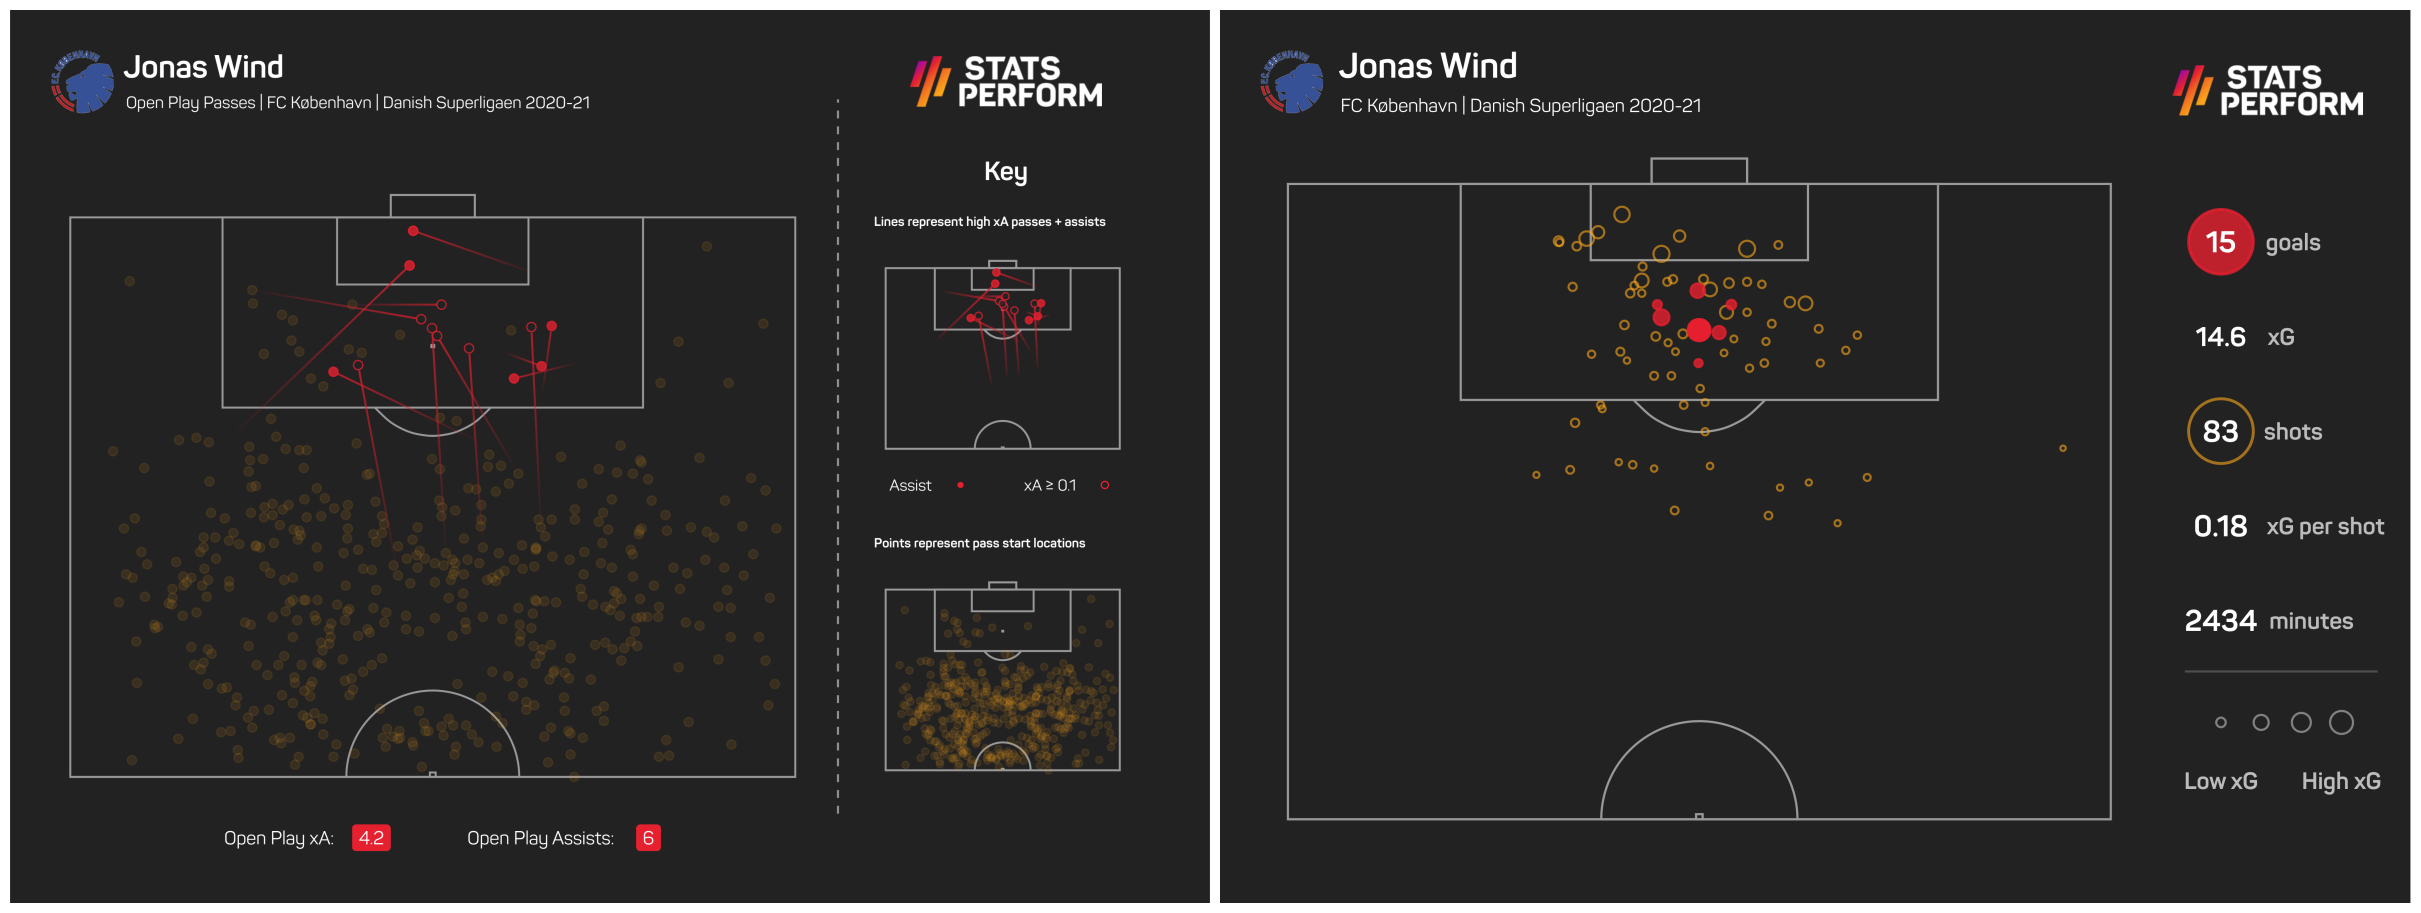 Jonas Wind has proven himself adept at not just finishing, but creating chances too